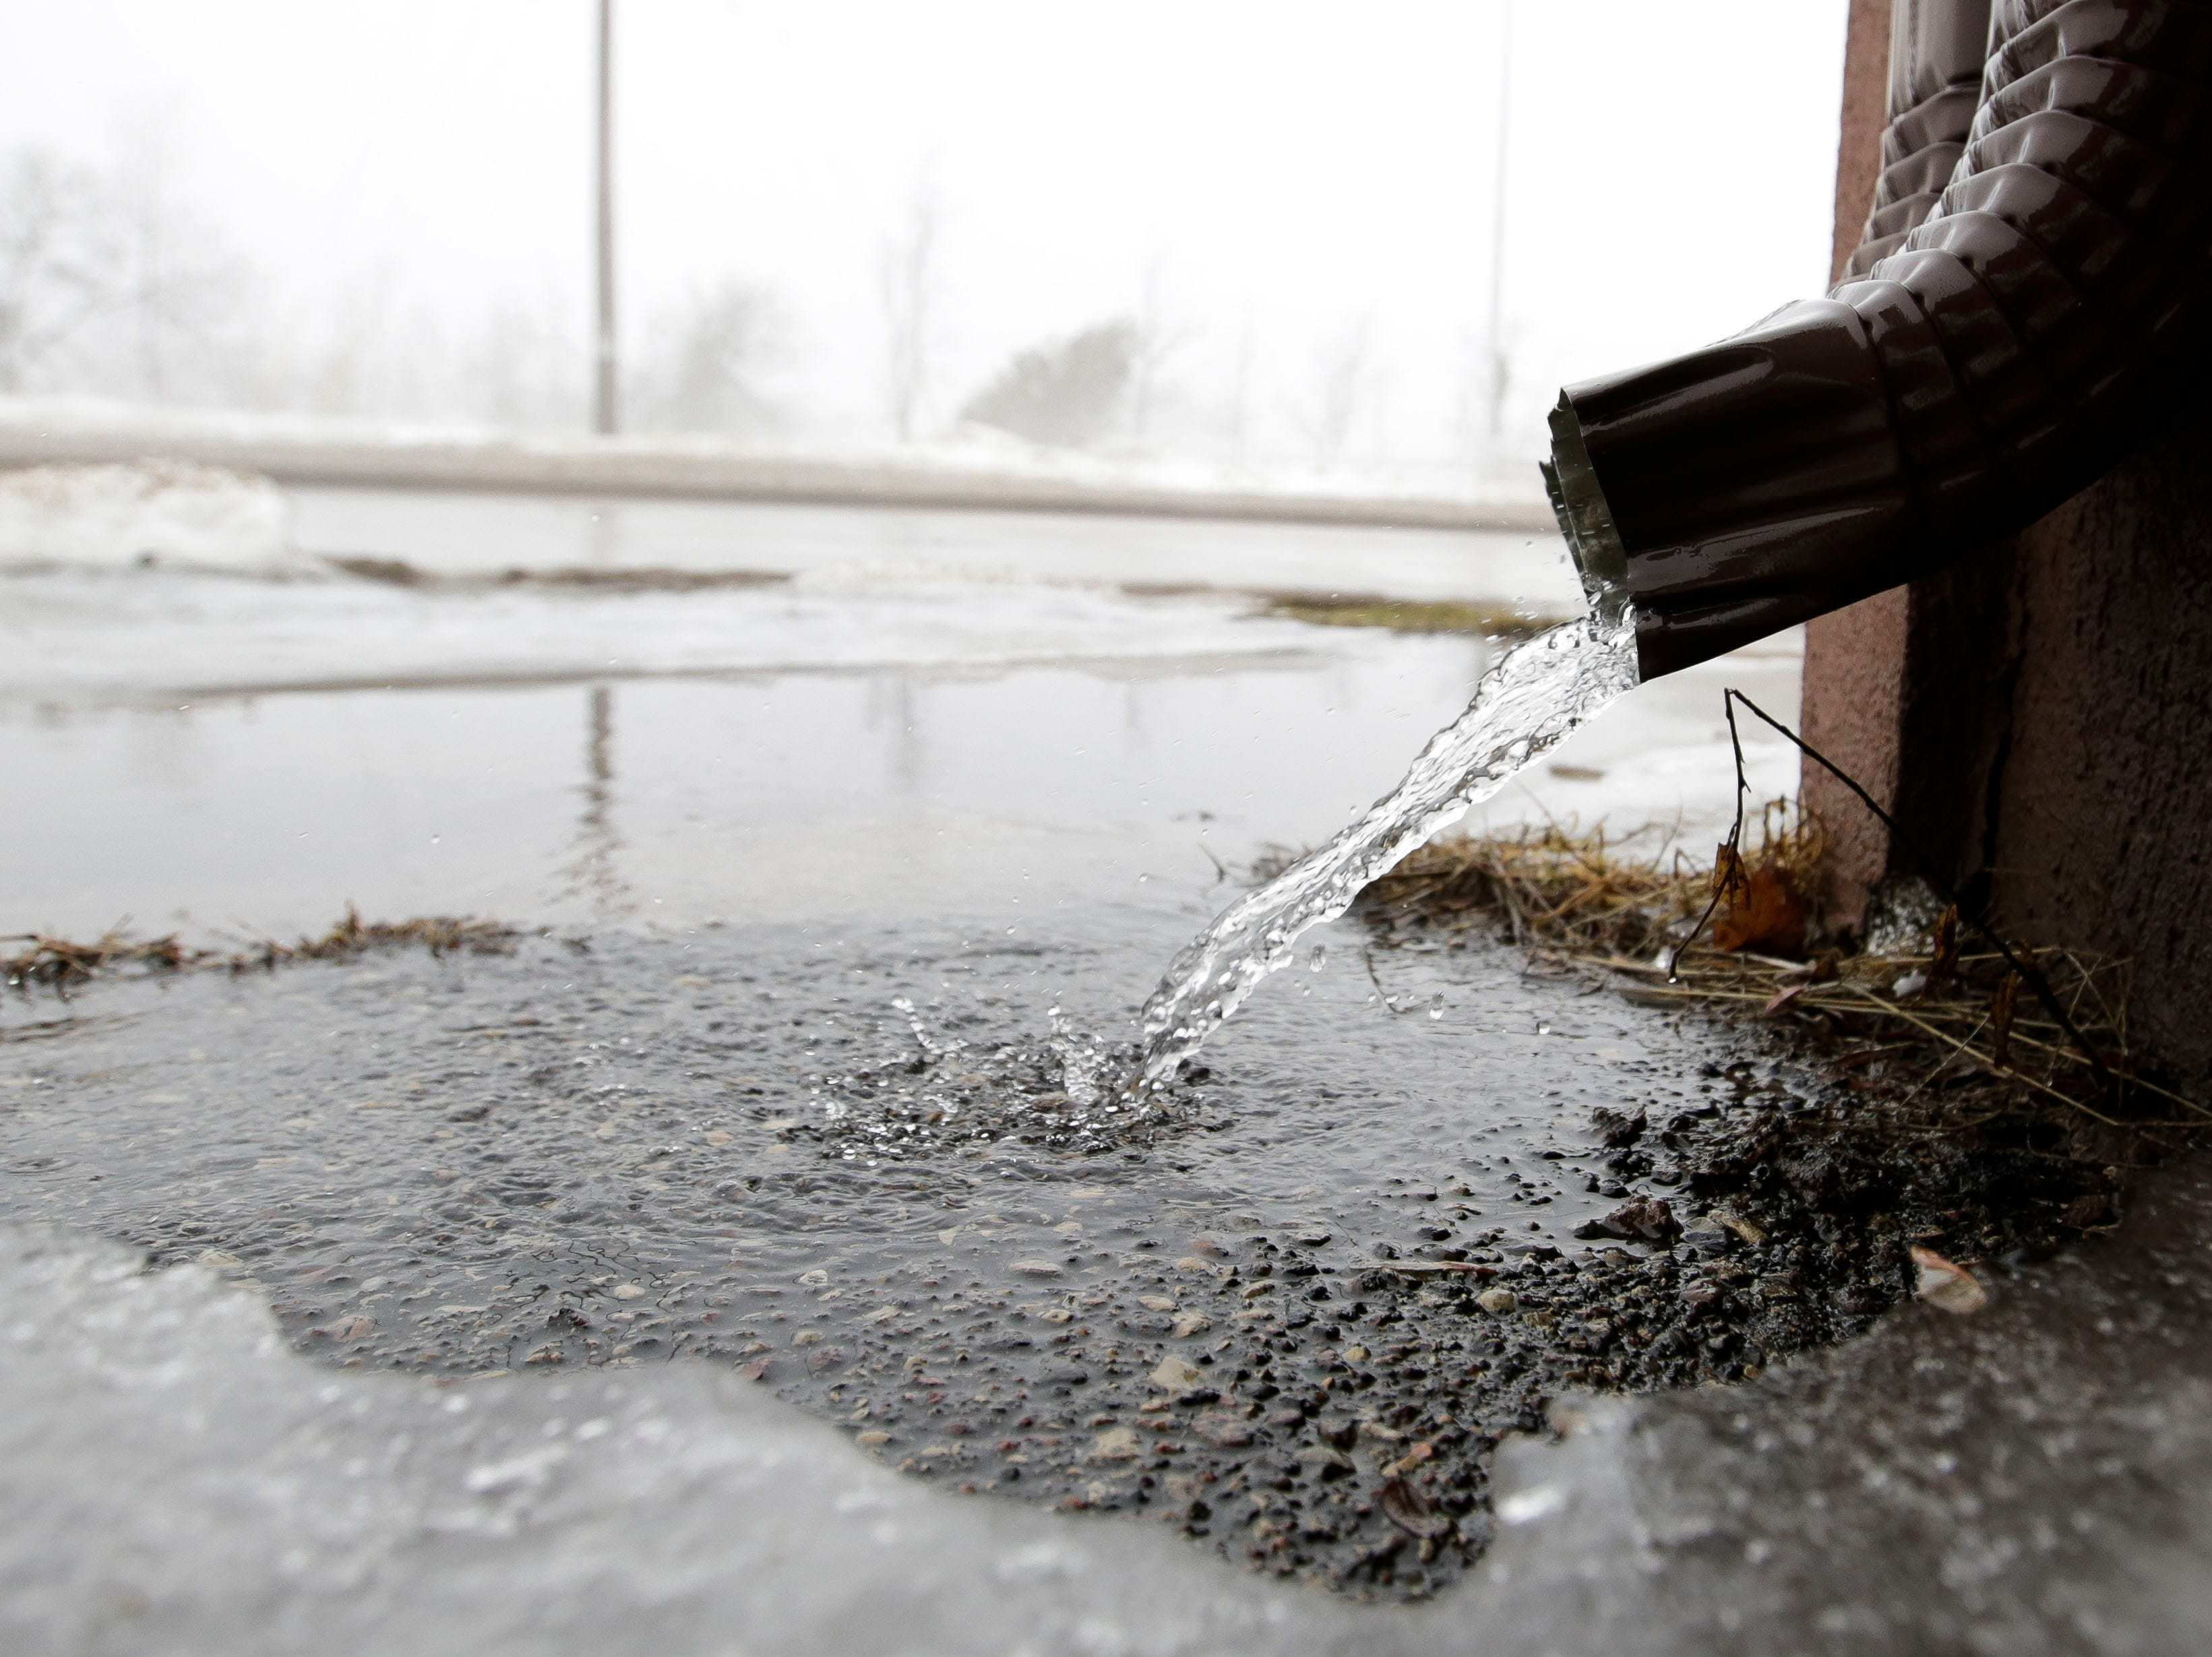 Water drains from a downspout on Thursday, March 14, 2019, in downtown Stevens Point, Wis. Warmer temperatures and recent rainfall has led to flooding throughout the area, and more rain and snow melt is expected in the coming days.